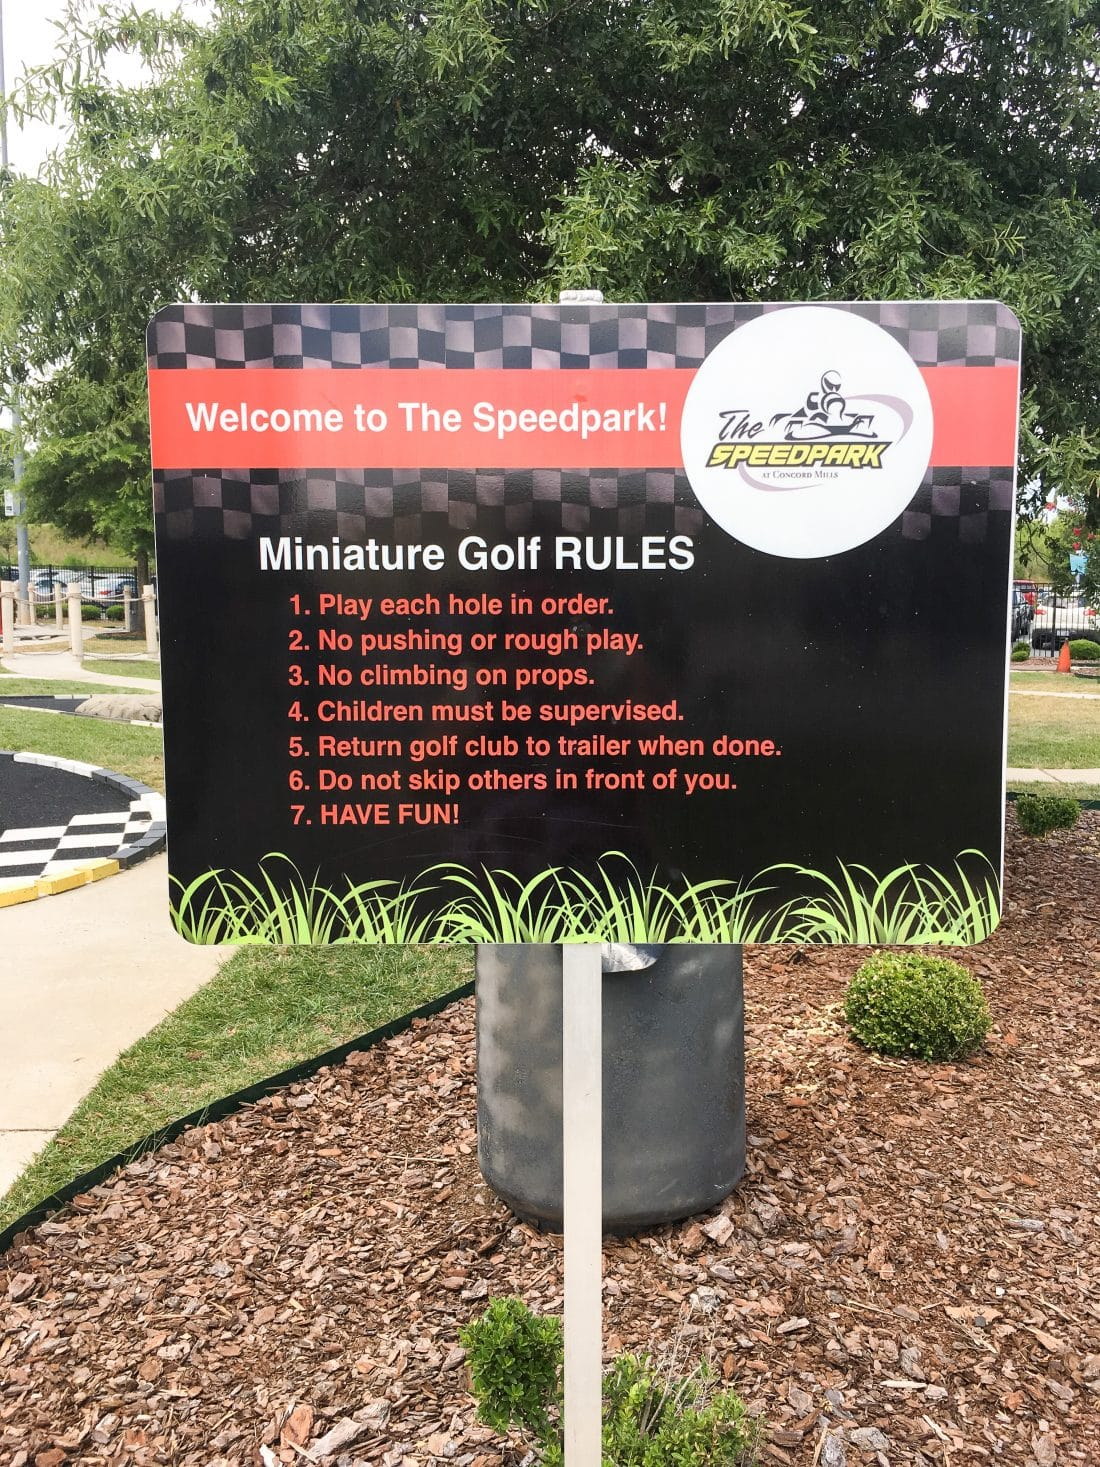 SpeedPark - Visit Cabarrus County Mini Golf Sign. SpeedPark - Visit Cabarrus County Mini Golf Sign. Read more about our Racing Good Time at The Speedpark in Concord Mills North Carolina.